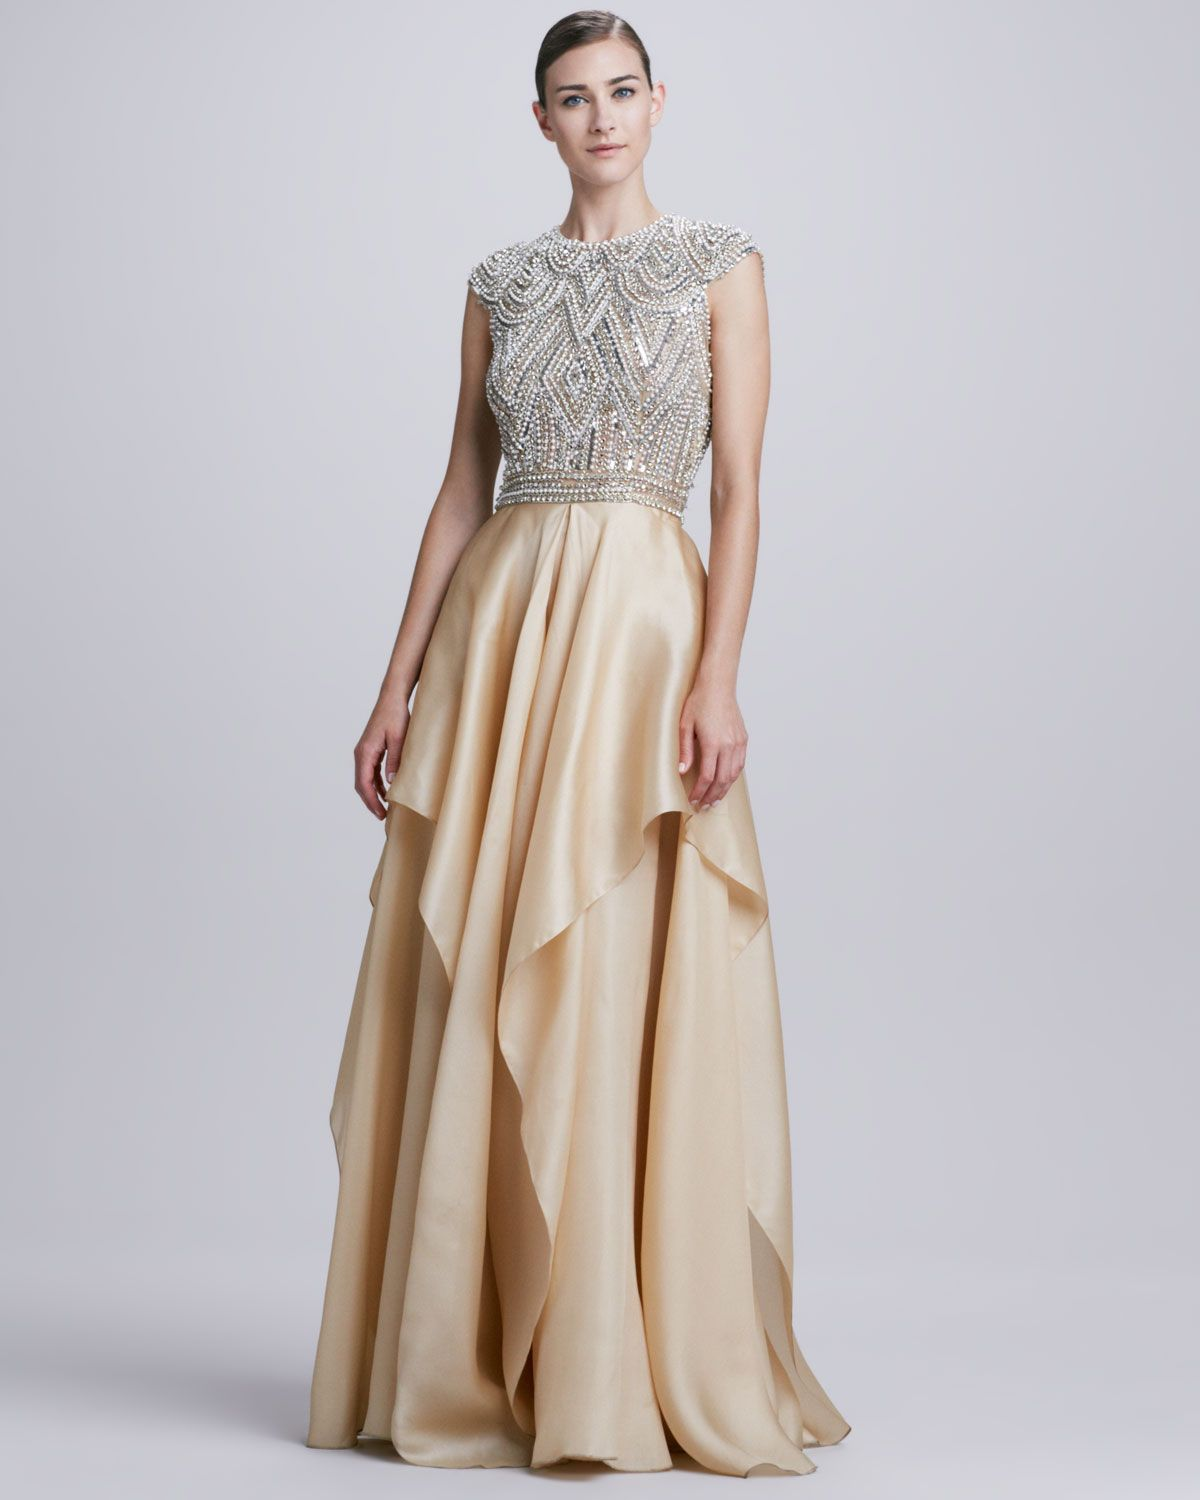 Usa Replications Of Wedding Dresses Inspired Designer Evening